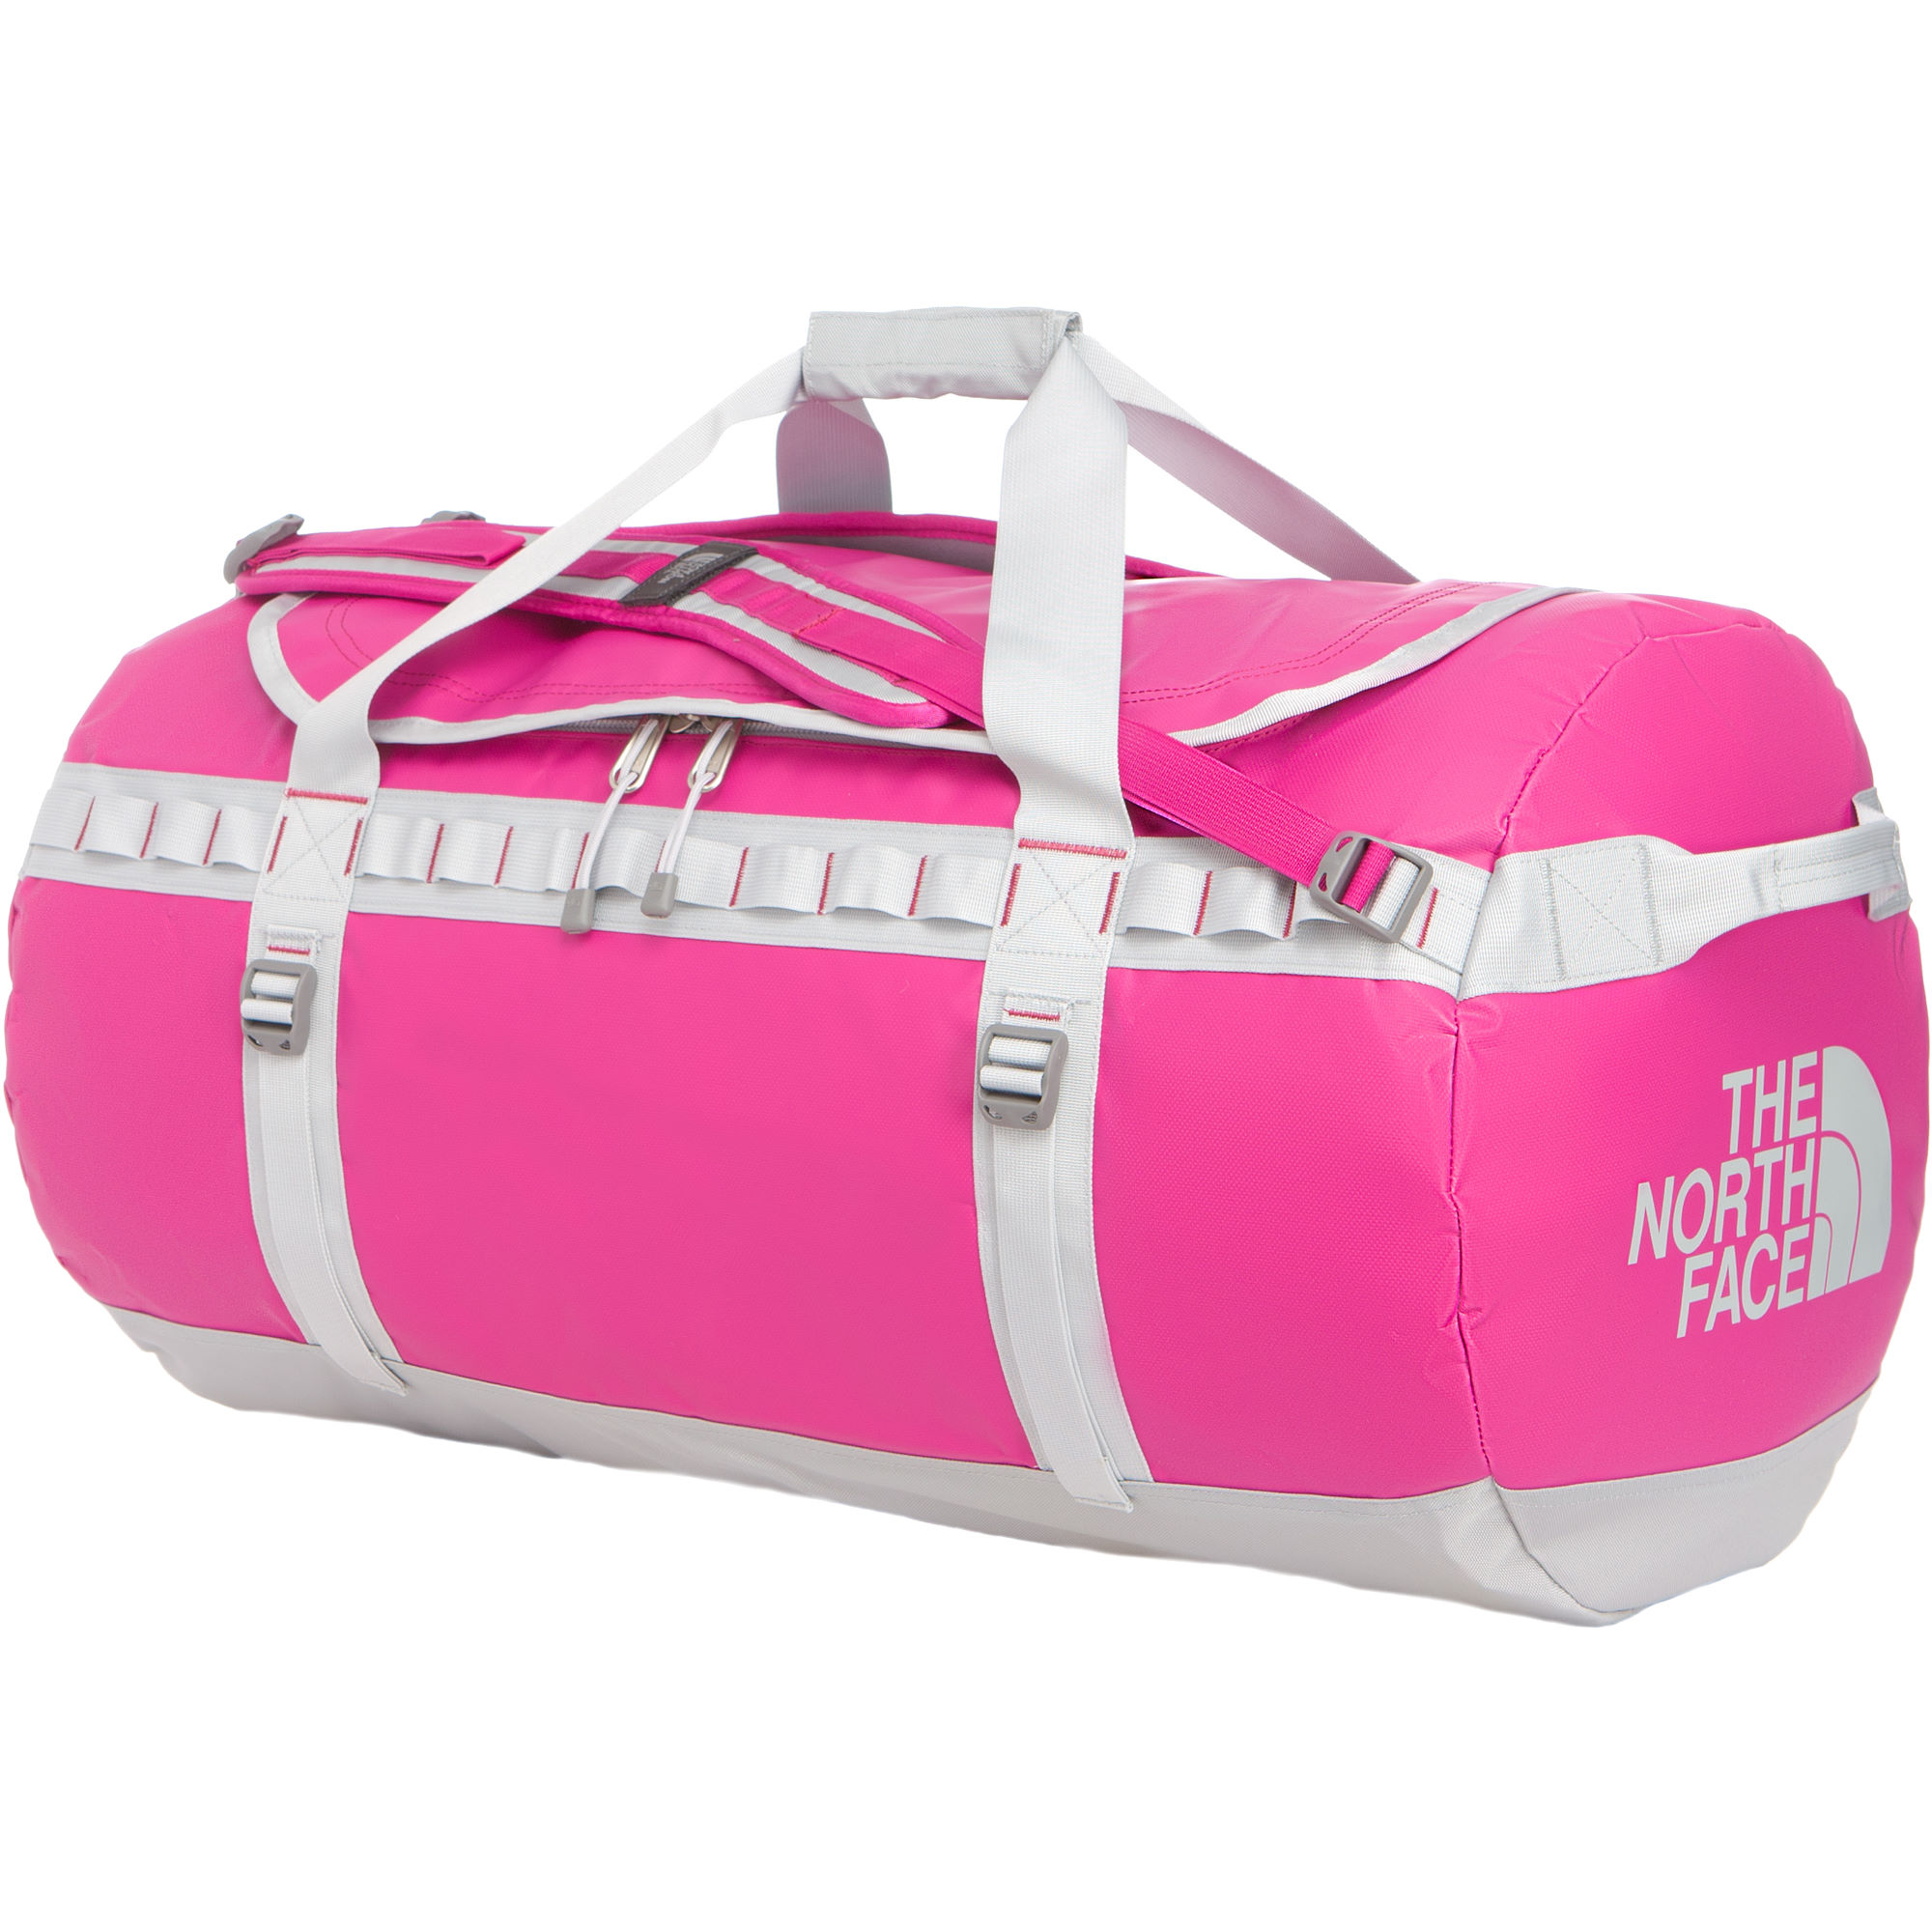 The-North-Face-Base-Camp-Duffel-Bag-Large-AW13-Travel-Bags-Grey-Pink-AW13-T0ASTEB47.jpg?w=2000&h=2000&a=7